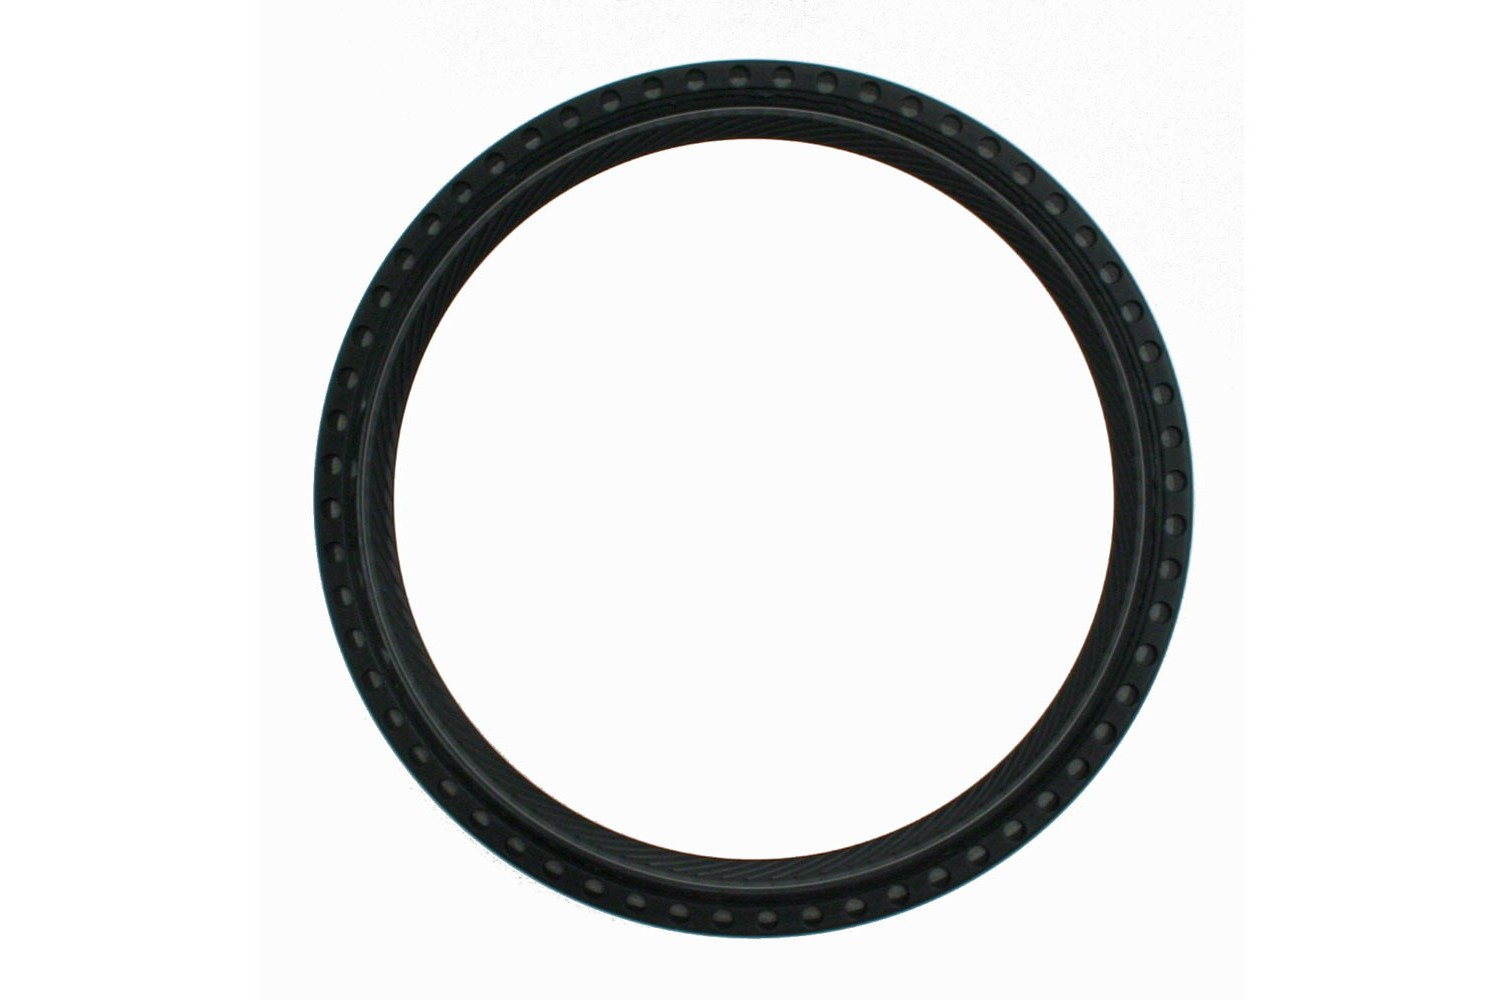 Ford Mustang Rear Main Seal 4 6L (96-10)